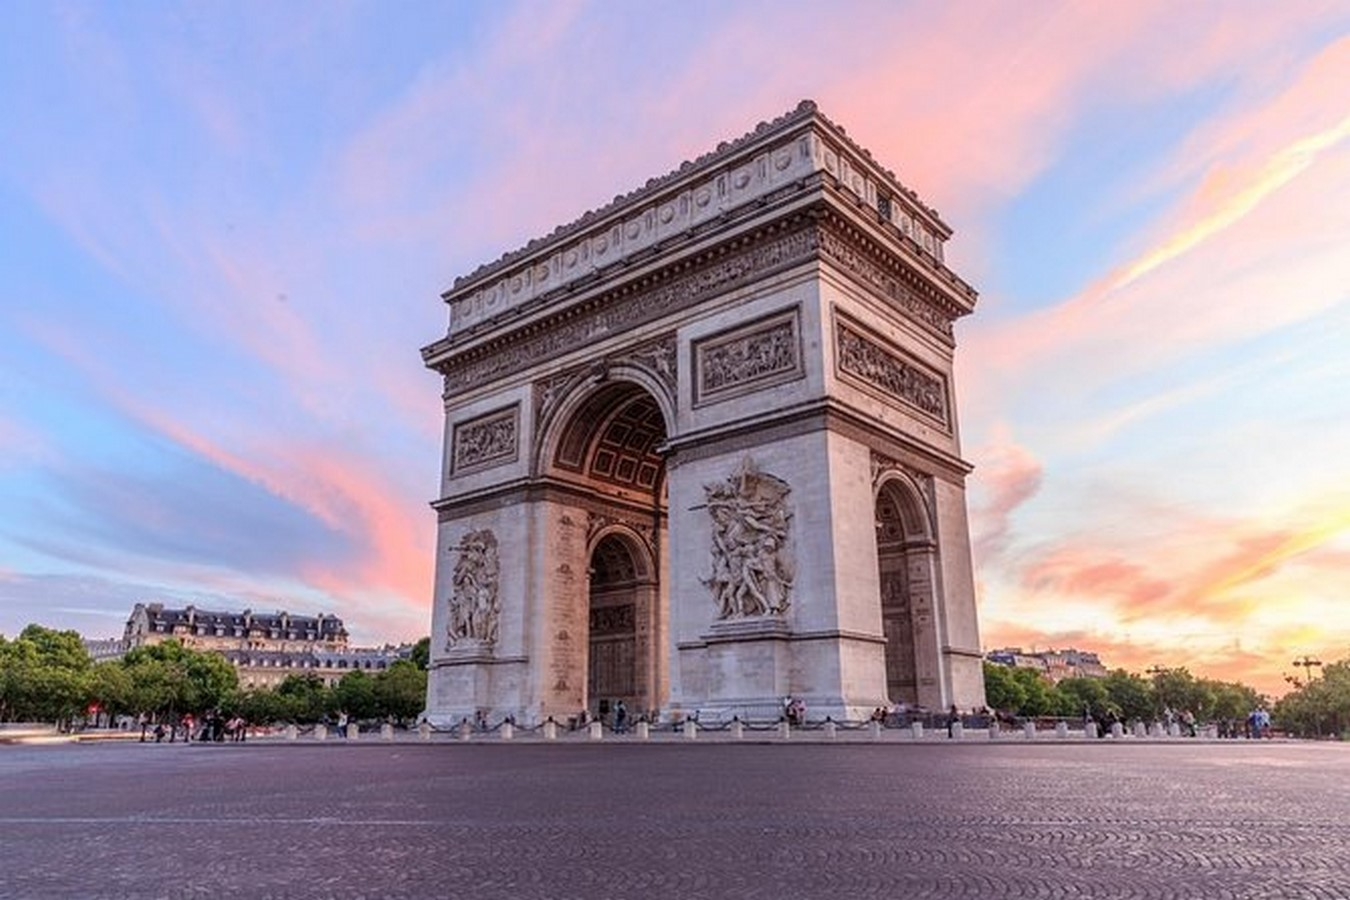 10 Things you did not know about Eiffel Tower - Sheet13